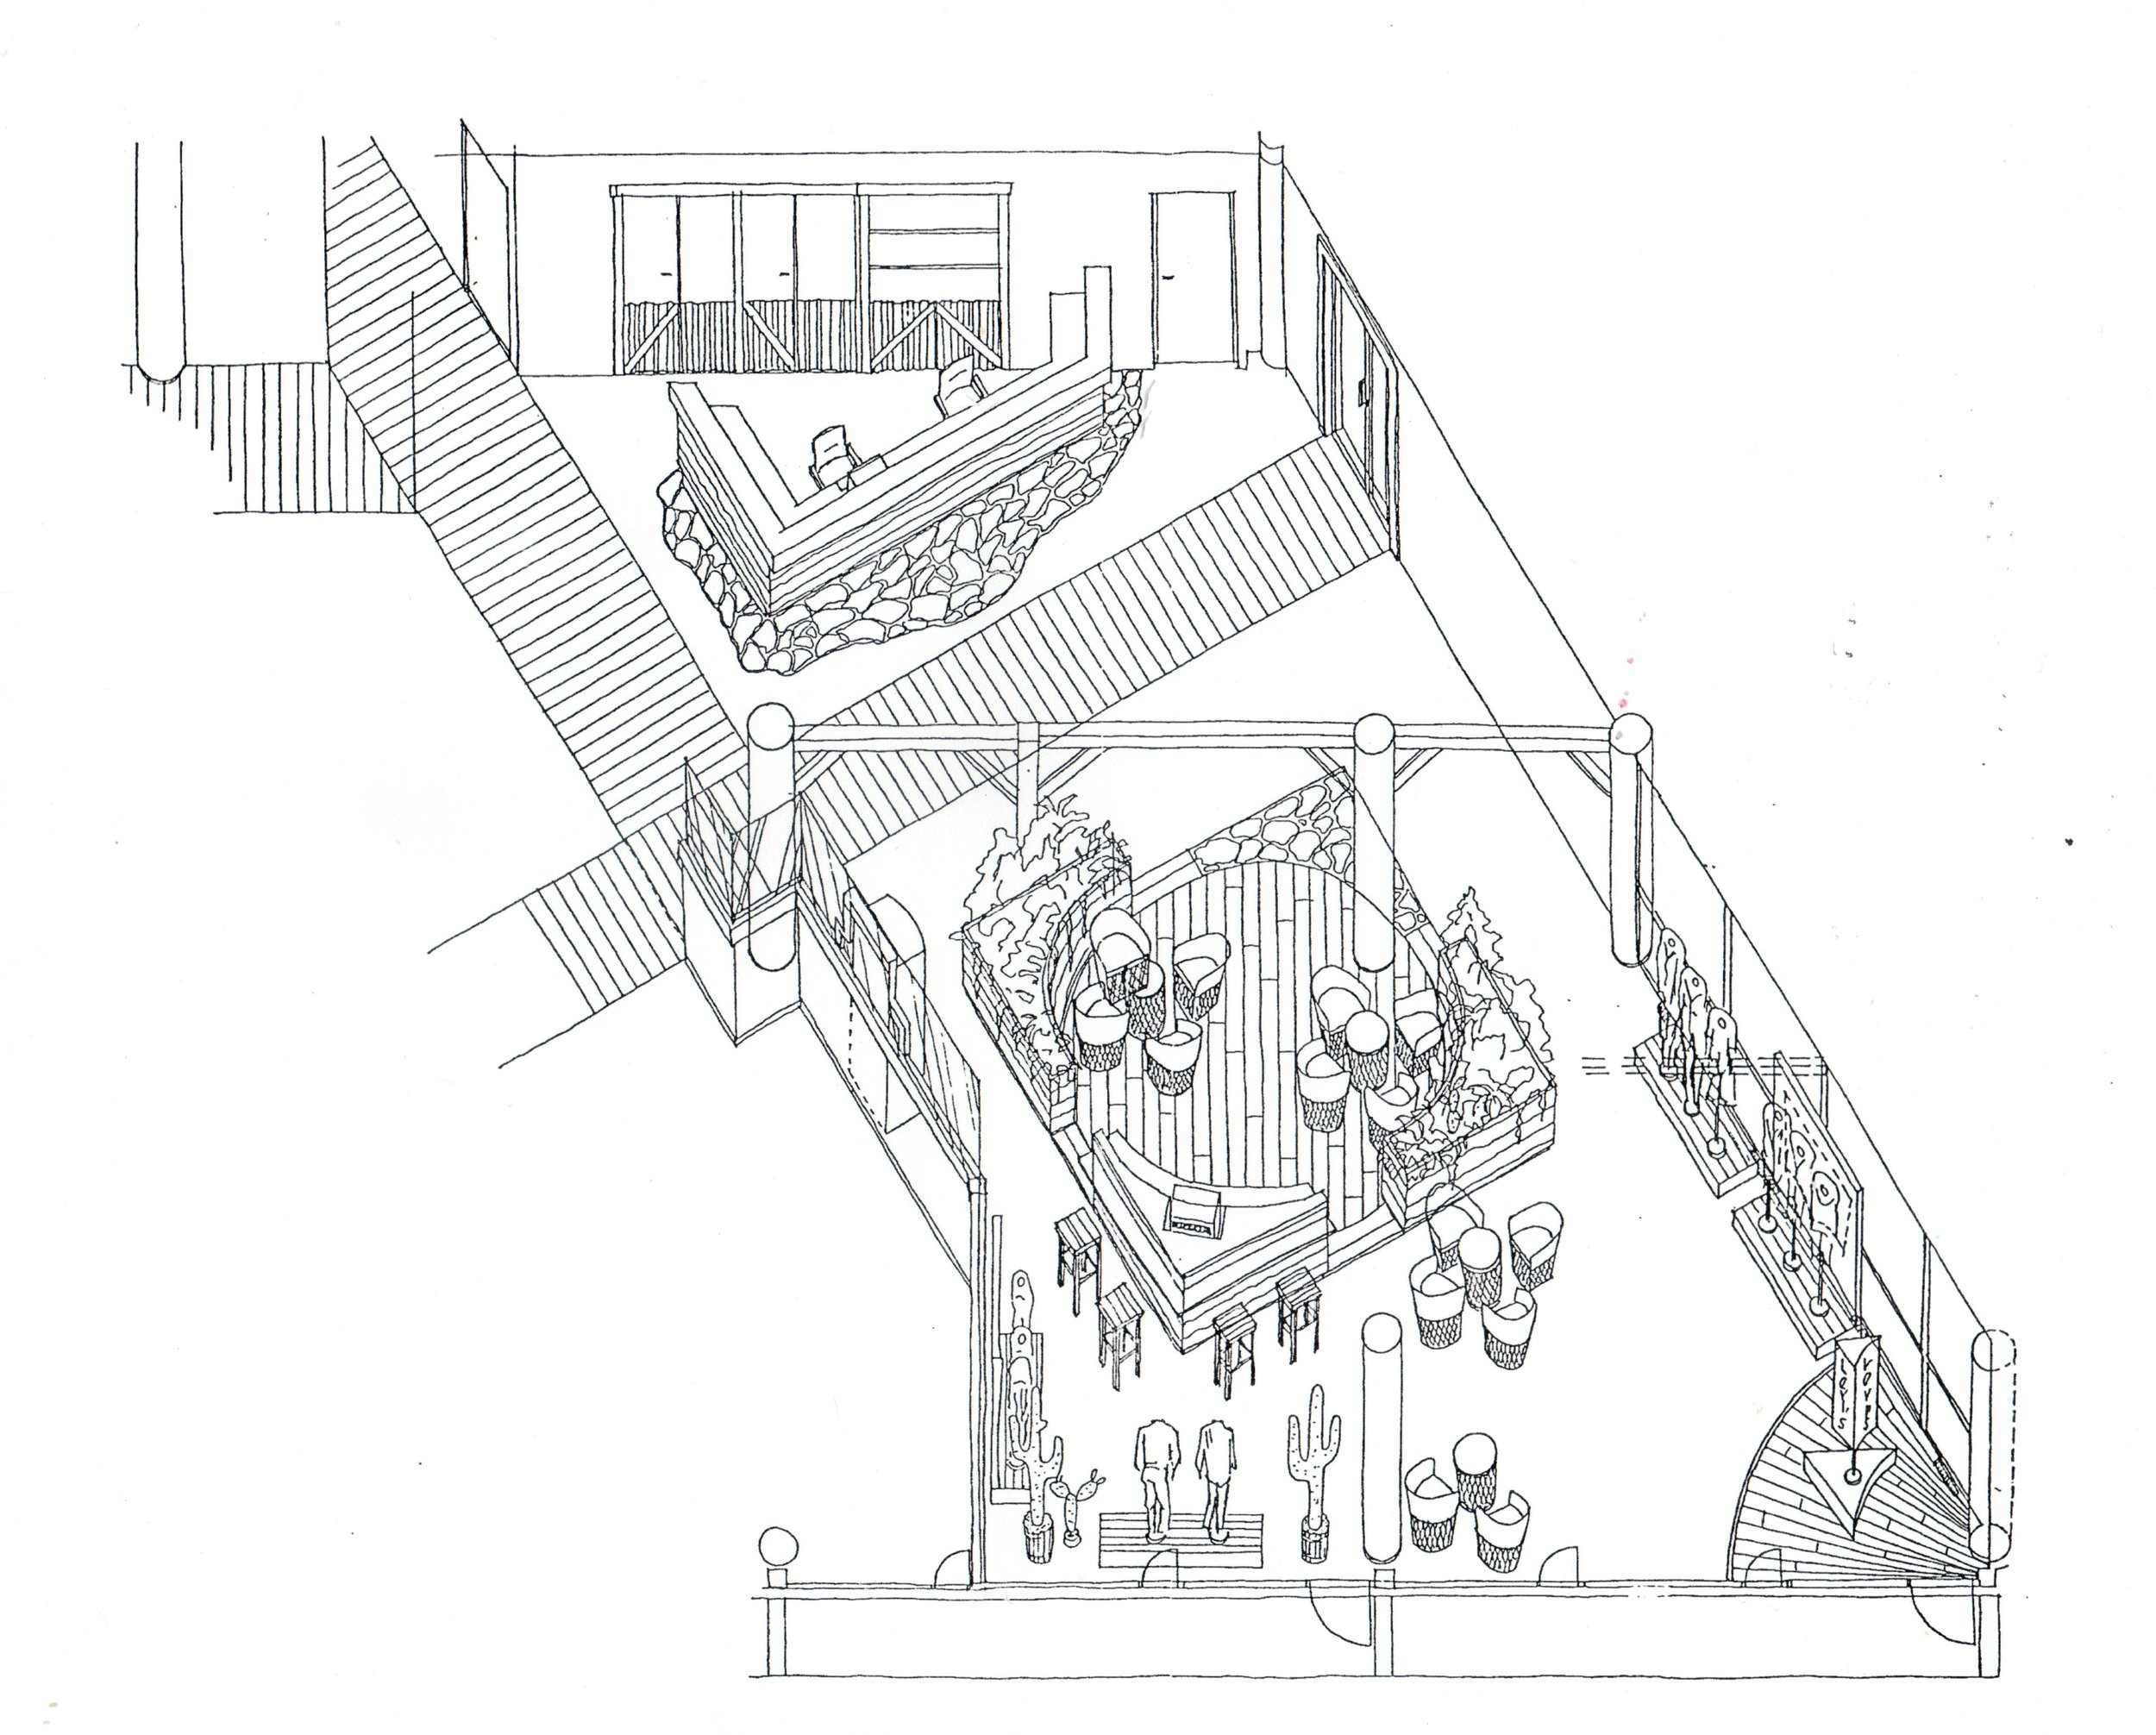 Isometric rendering of Levi's Strauss Headquarters, Aker Brygge, Oslo, Norway